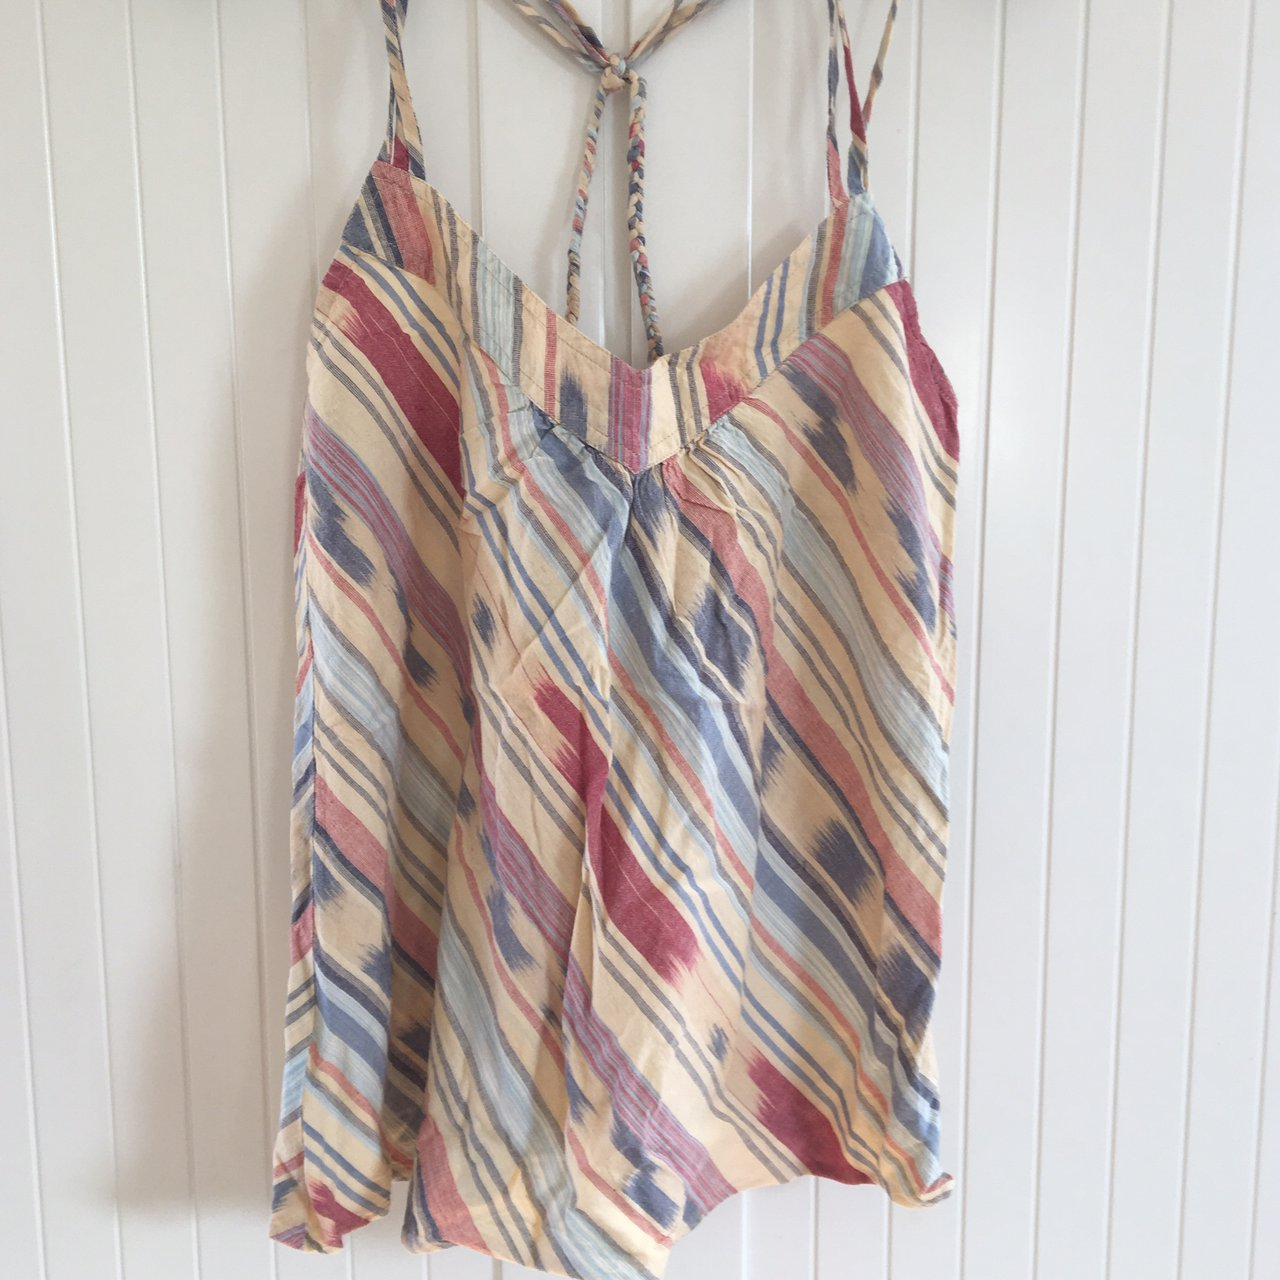 7885d9d74719f7 Blue striped top with crochet. £10. Heritage 81 (American brand) tribal